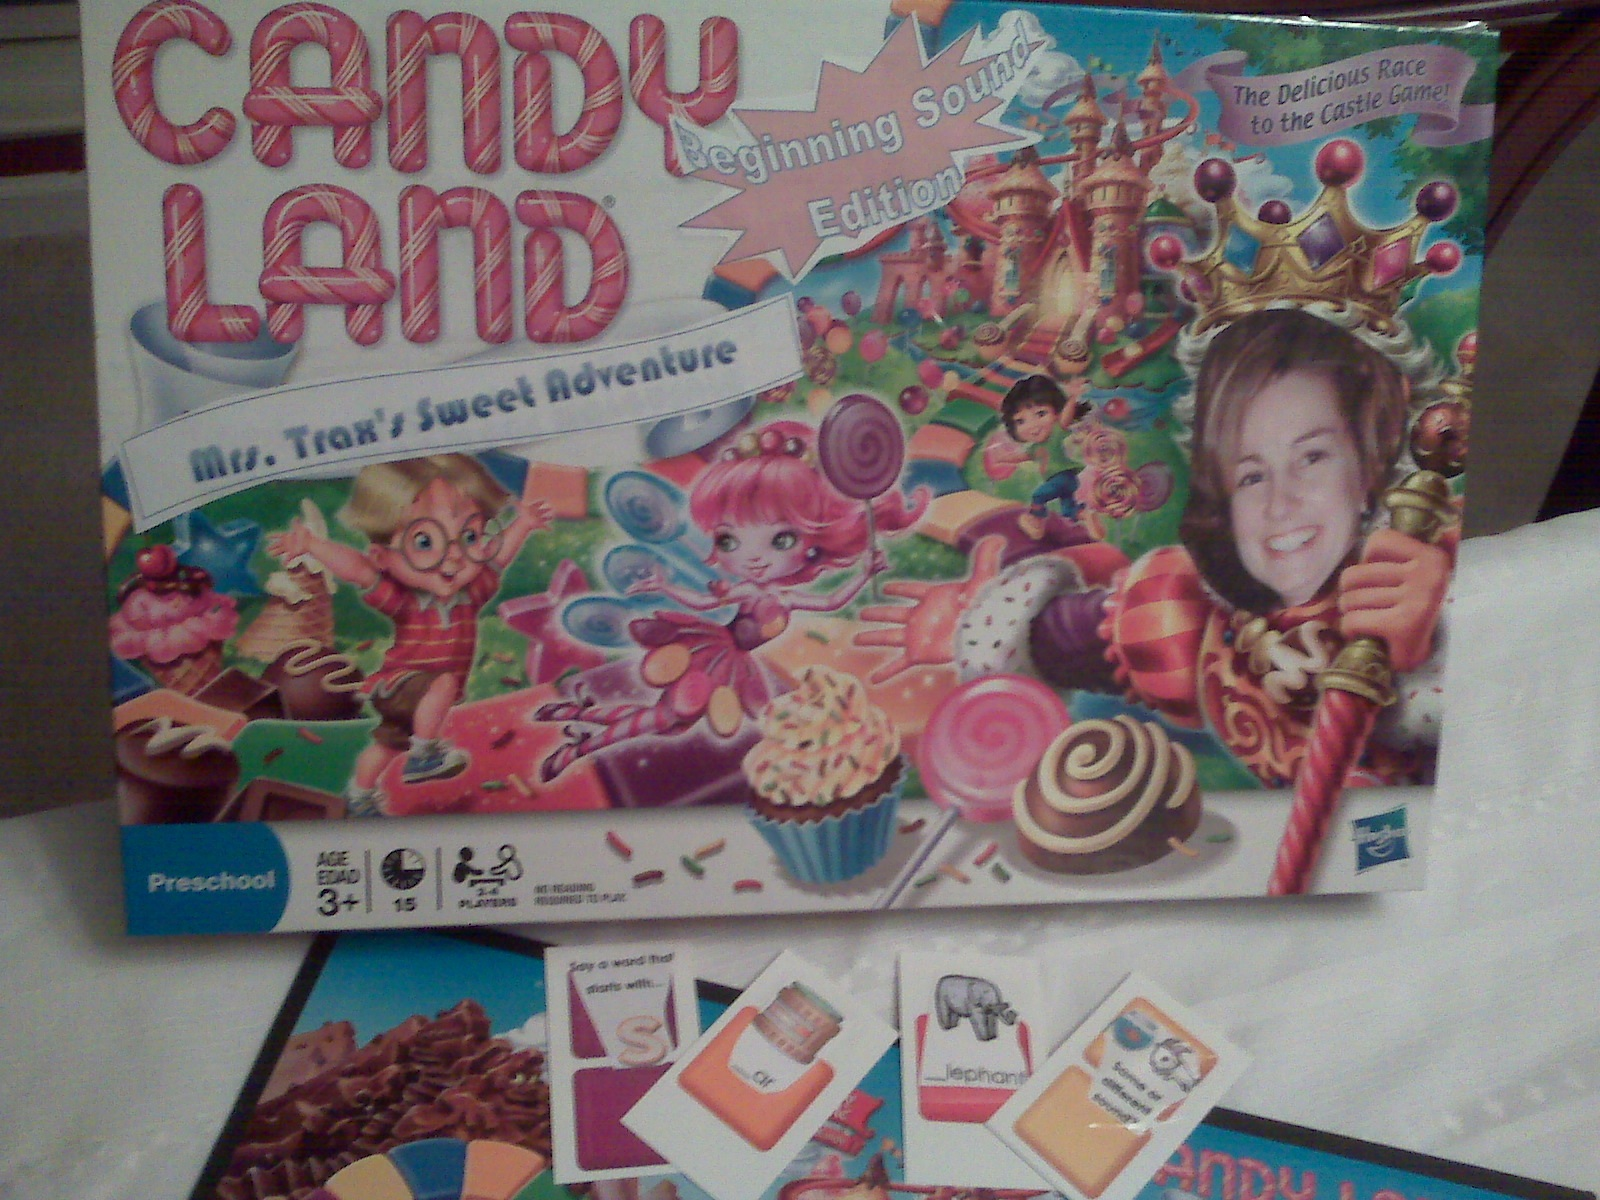 Candy Land Beginning Sounds Edition